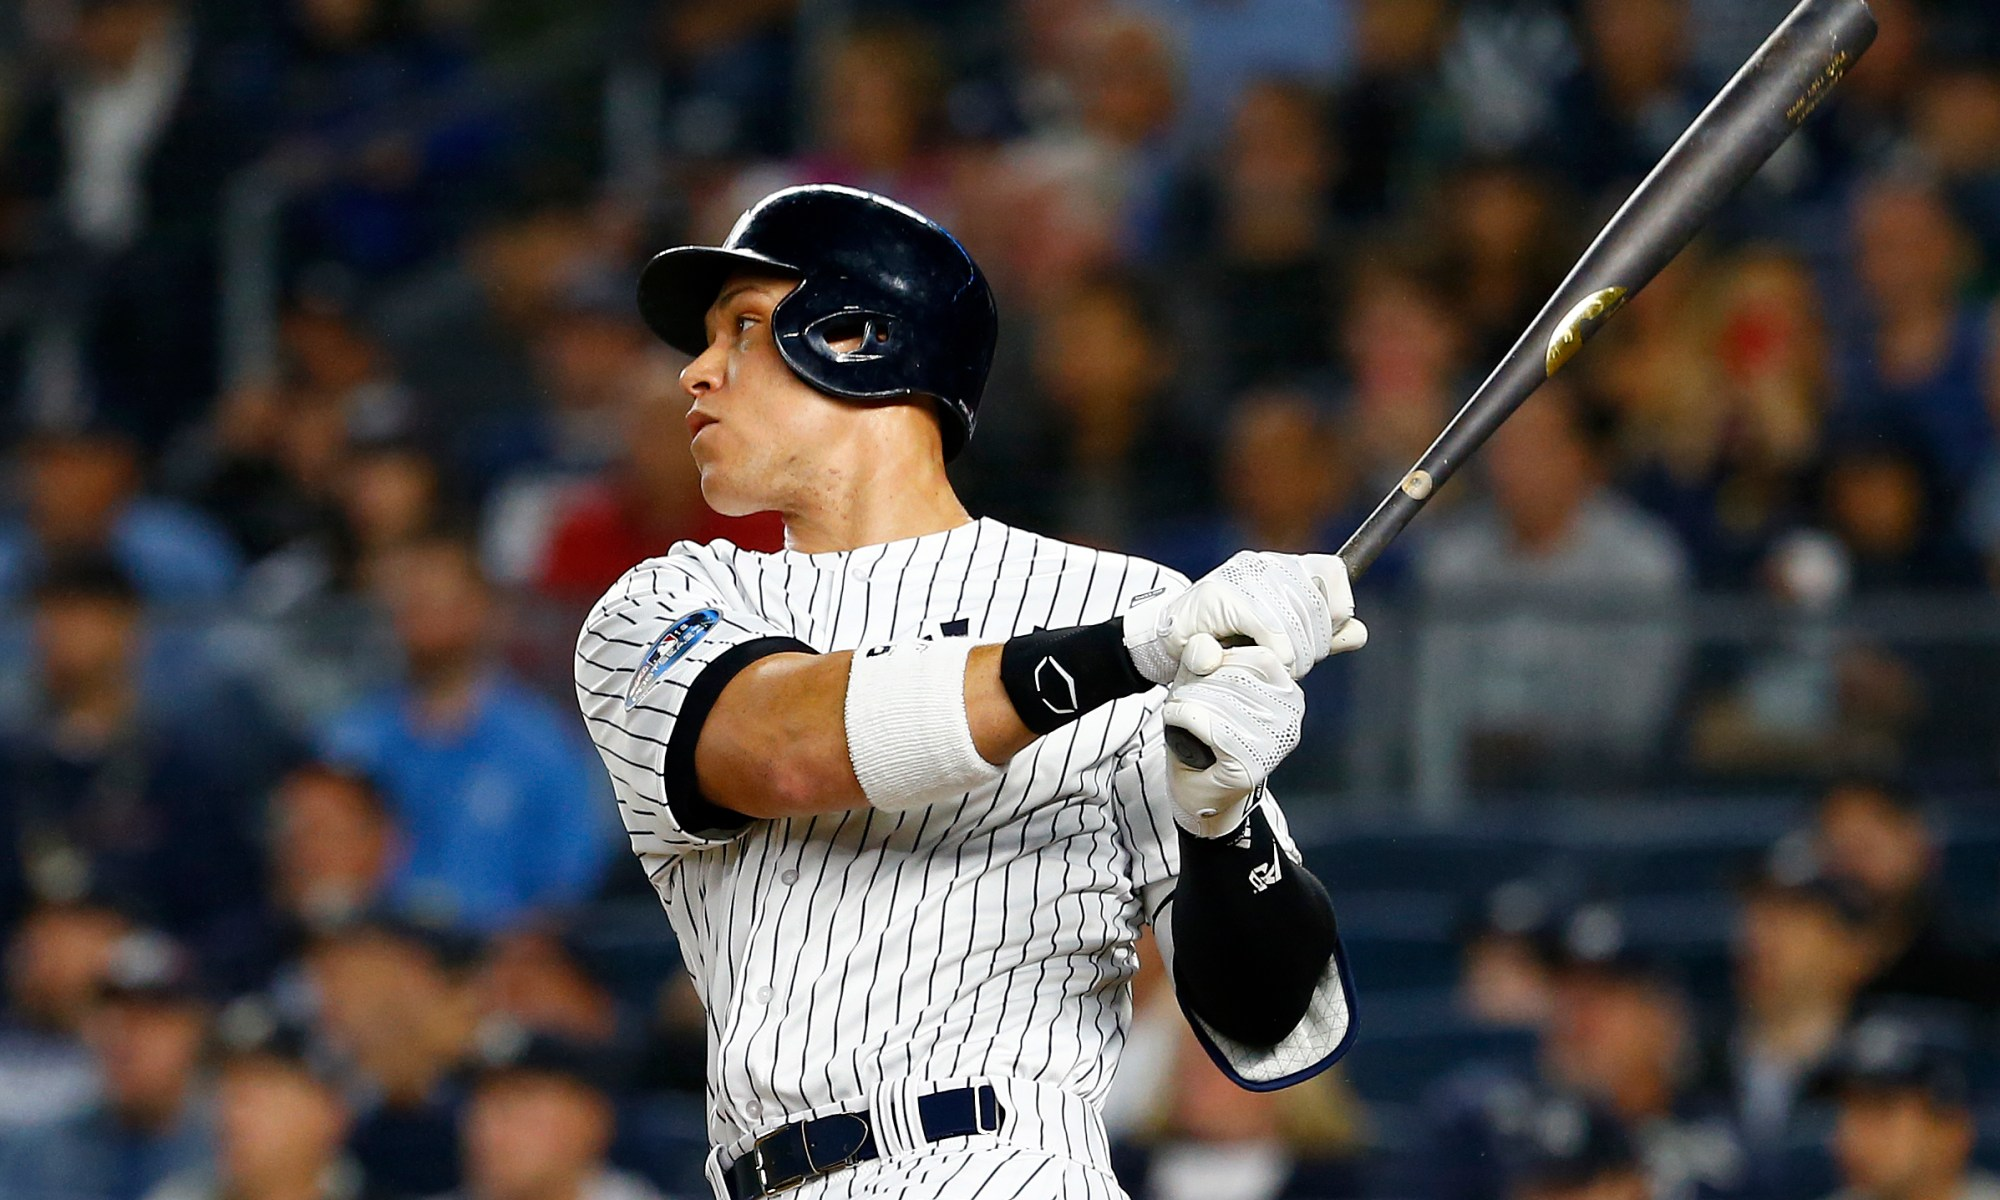 The Yankees need Aaron Judge back ASAP.